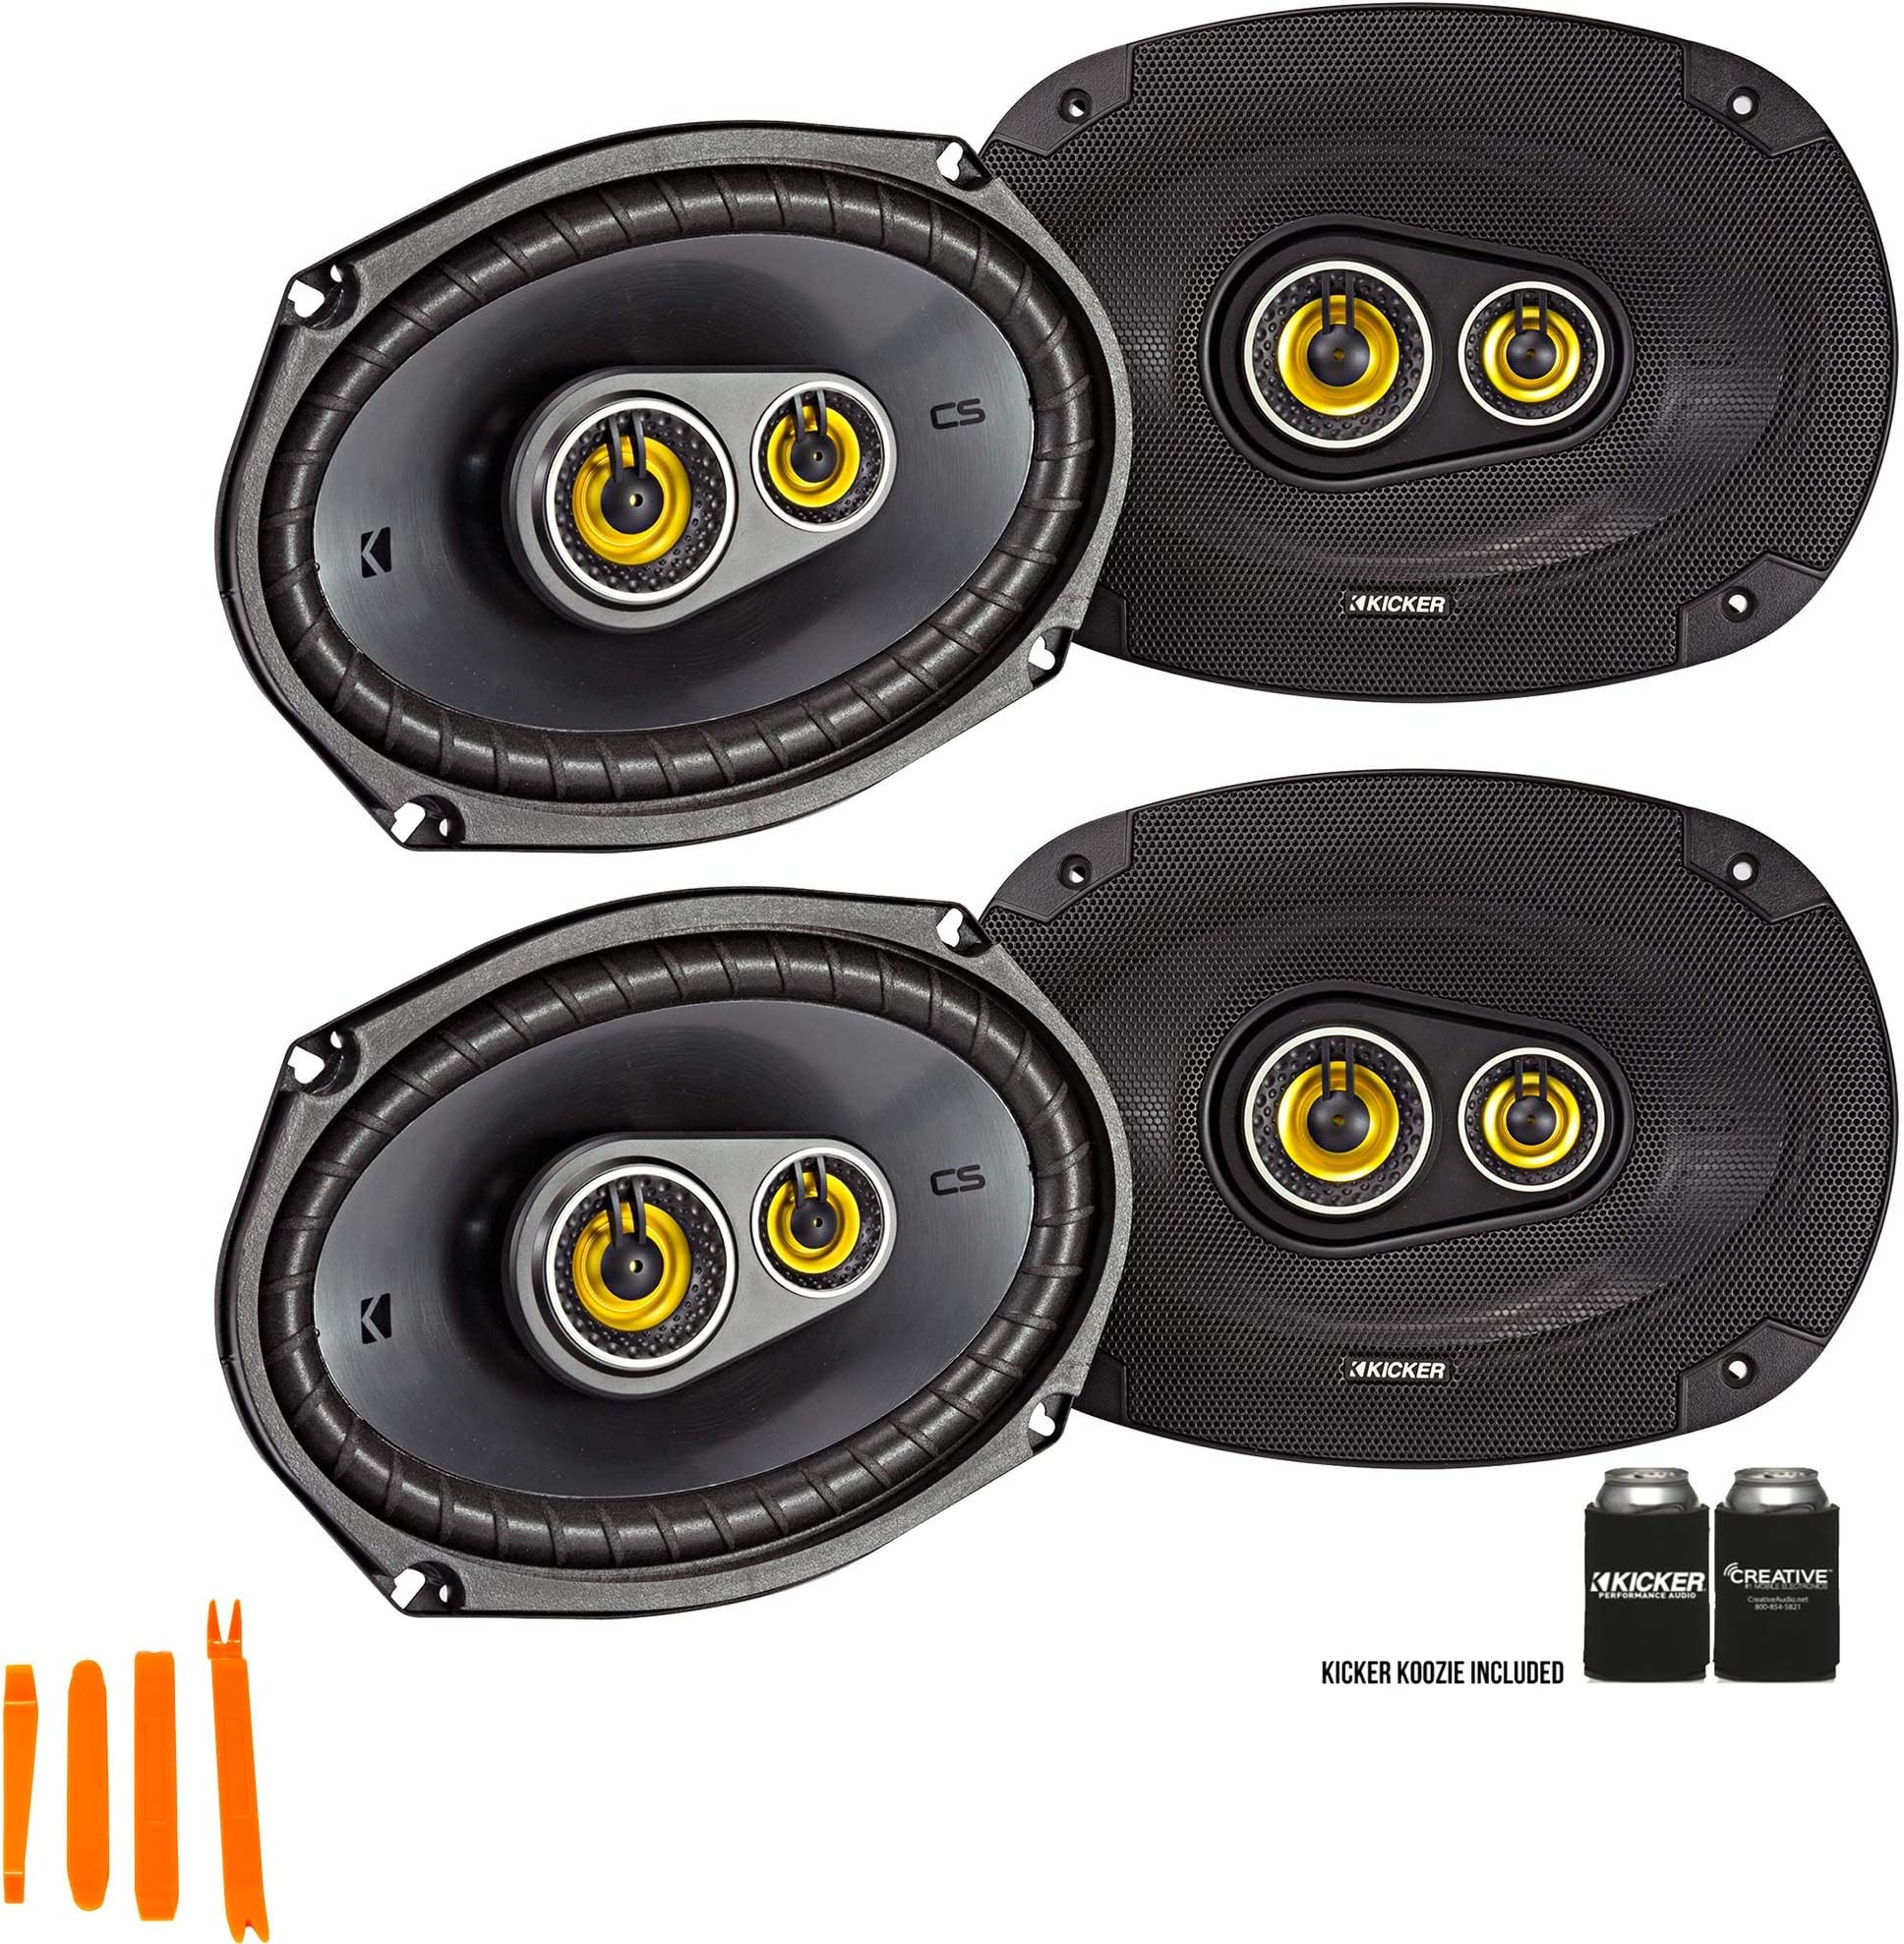 Kicker 46CSC6934 - Two Pairs of CS-Series CSC693 6x9-Inch (160x230mm) 3-Way Speakers, 4-Ohm (2 Pairs)